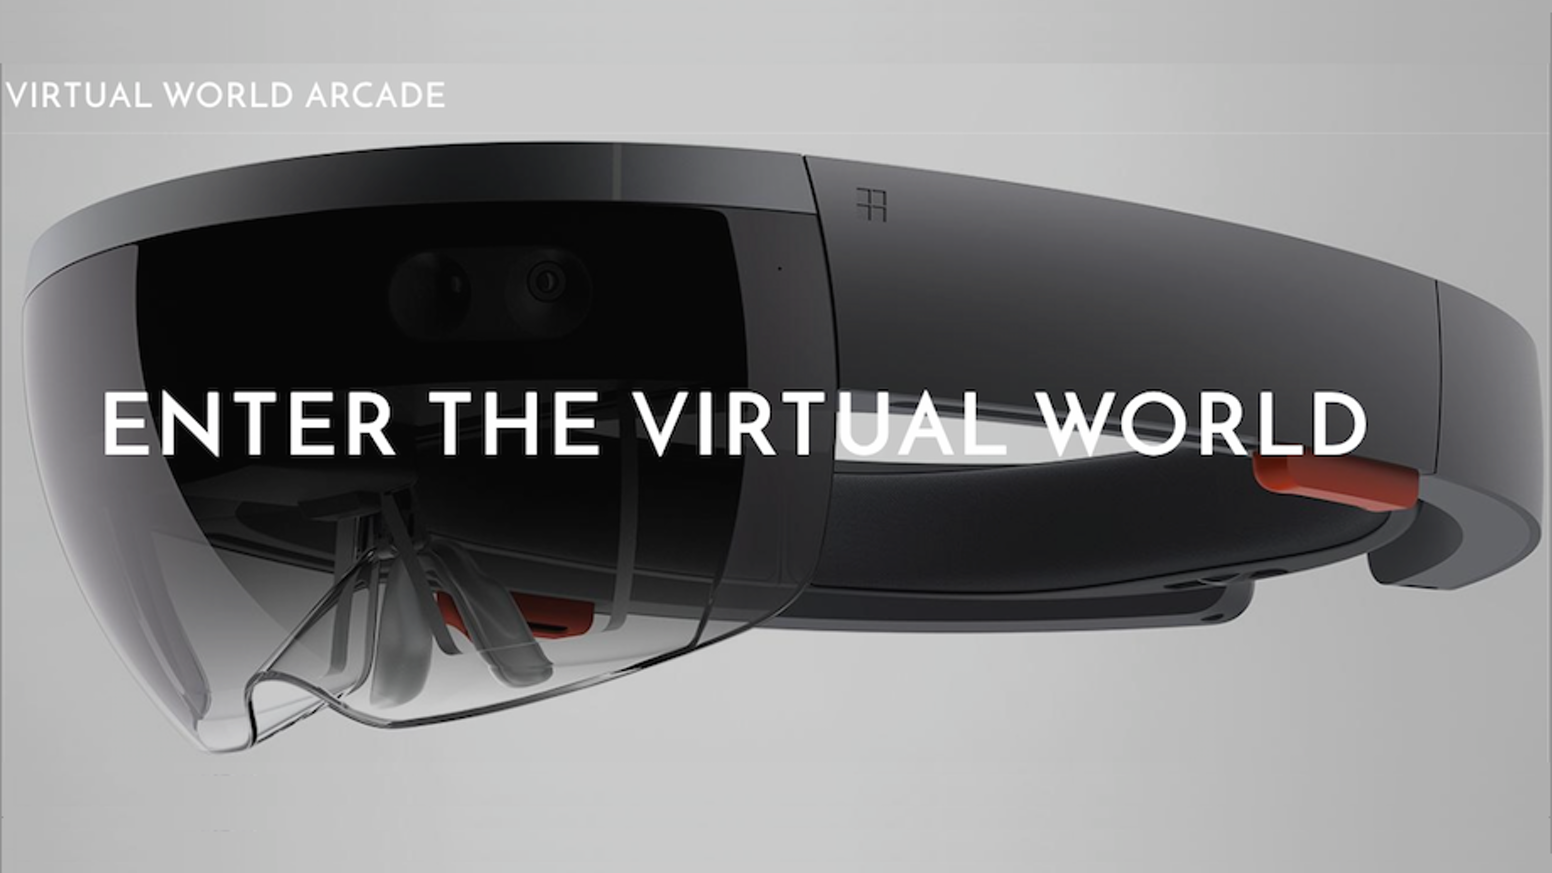 Virtual World Arcade - VR Gaming With HoloLens by Jeremy Lam